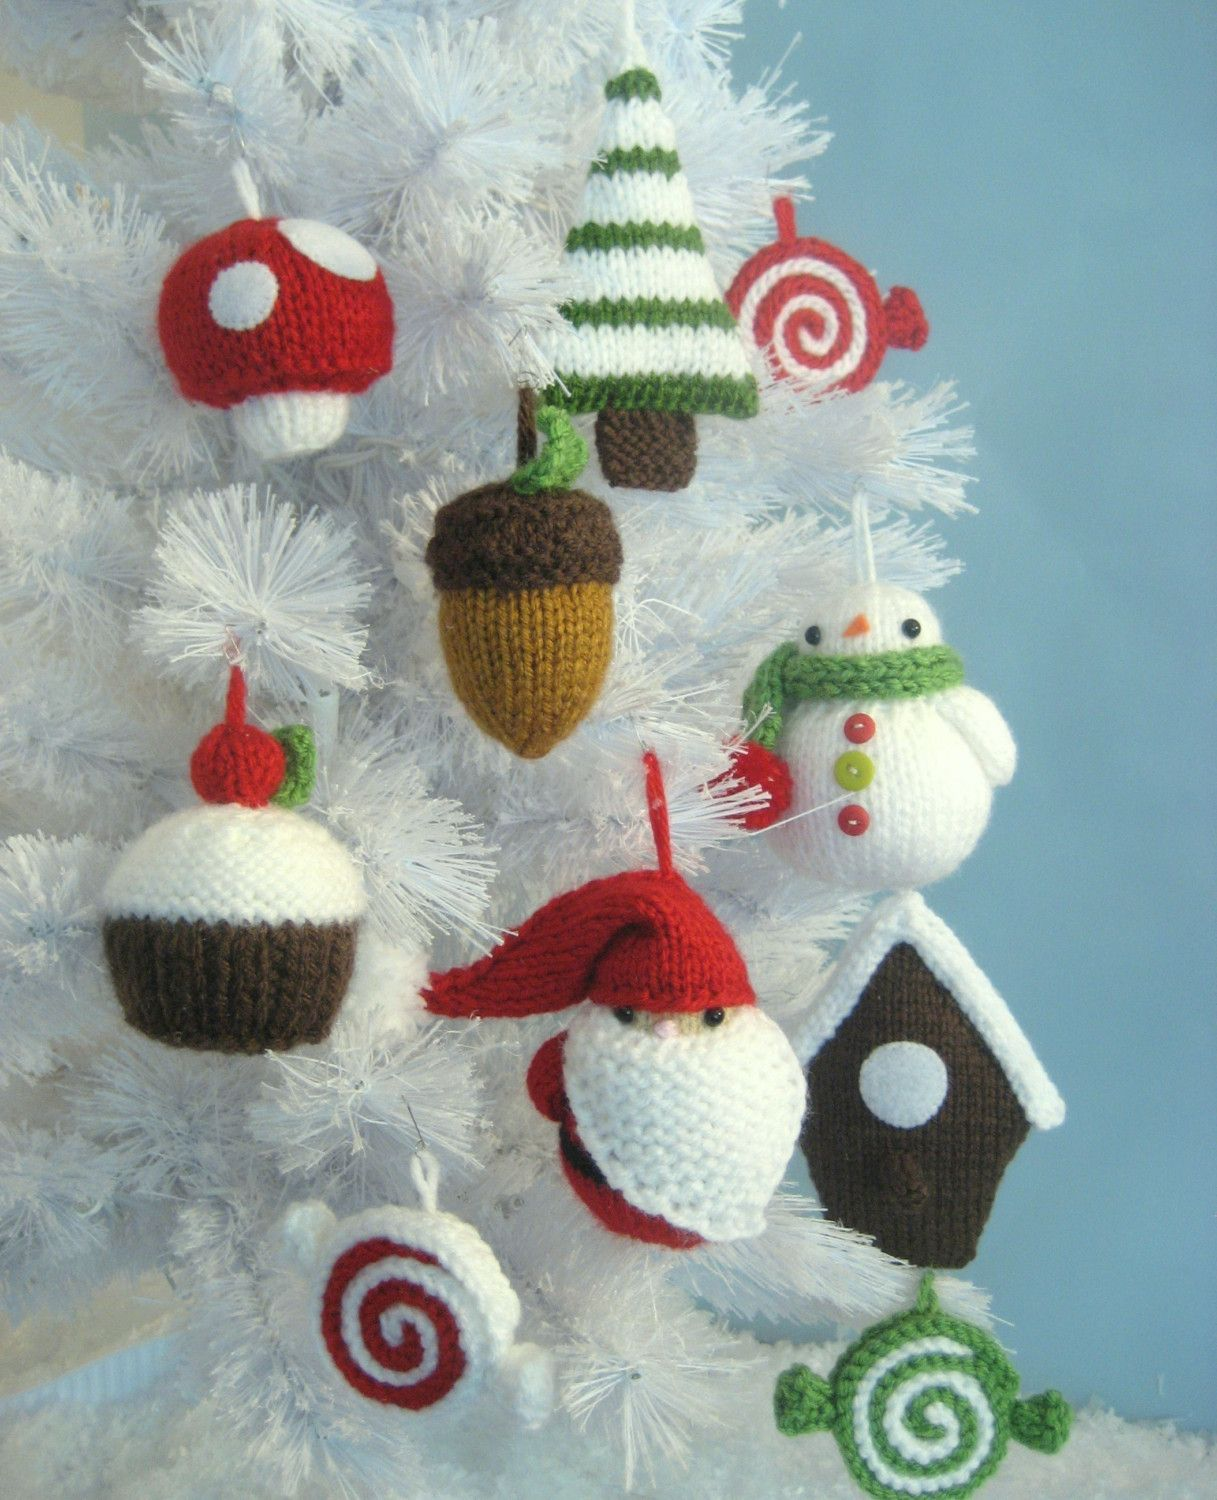 Knitting Patterns For Christmas Brooches : Free Kitted stocking patterns christmas stocking knitting patterns Primse...